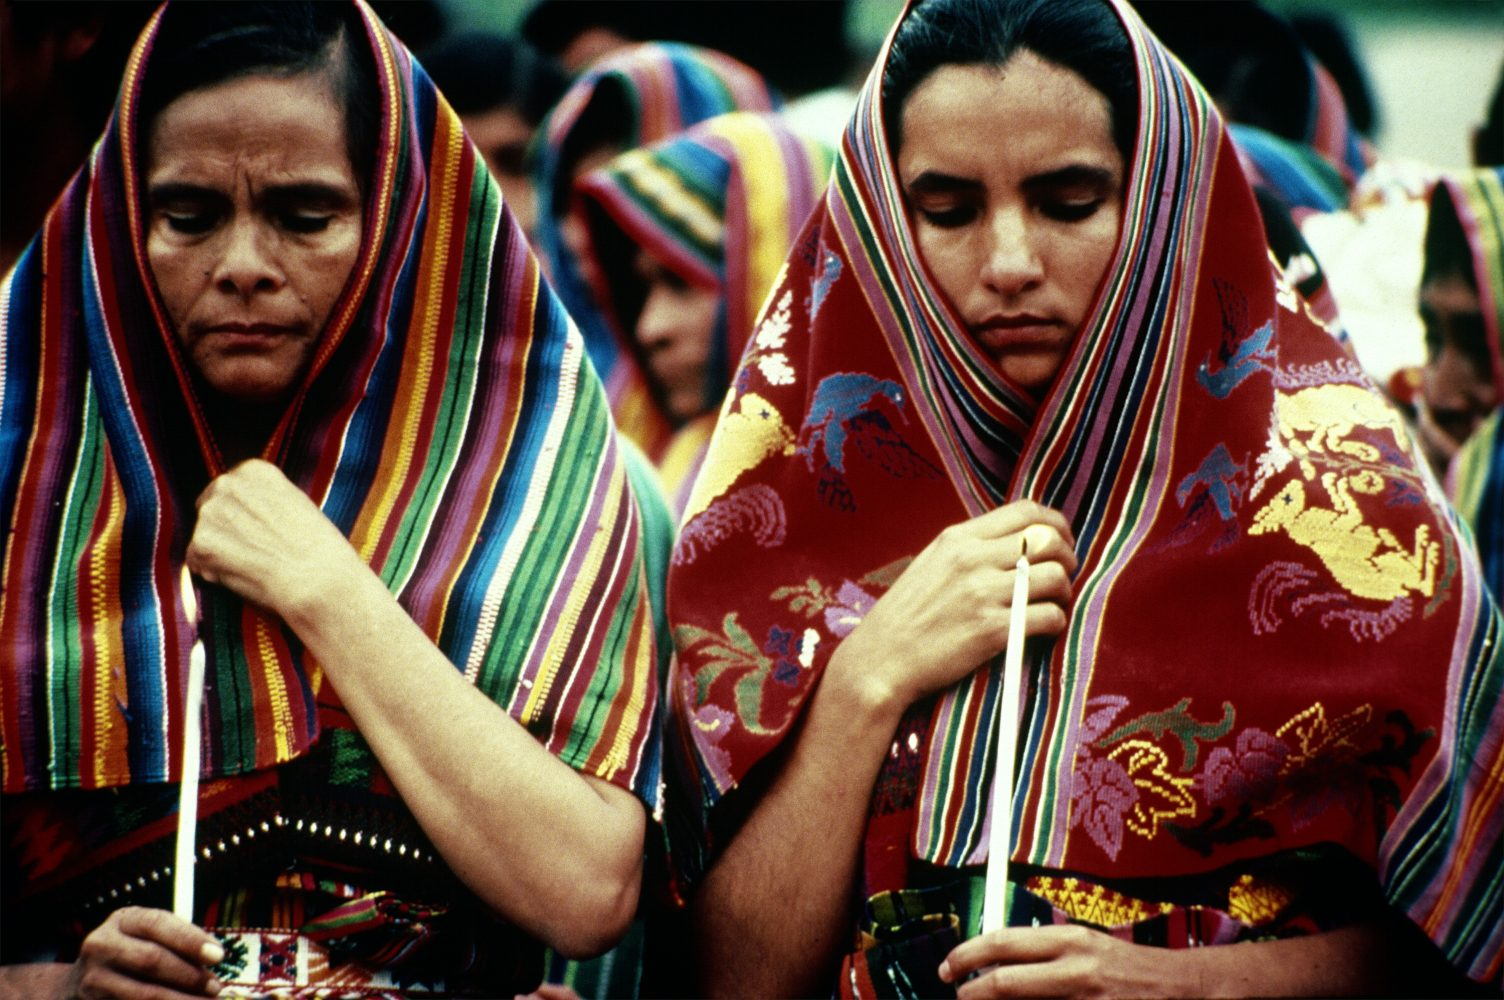 The Academy Invites You to a Screening of 'El Norte' With Director Gregory Nava